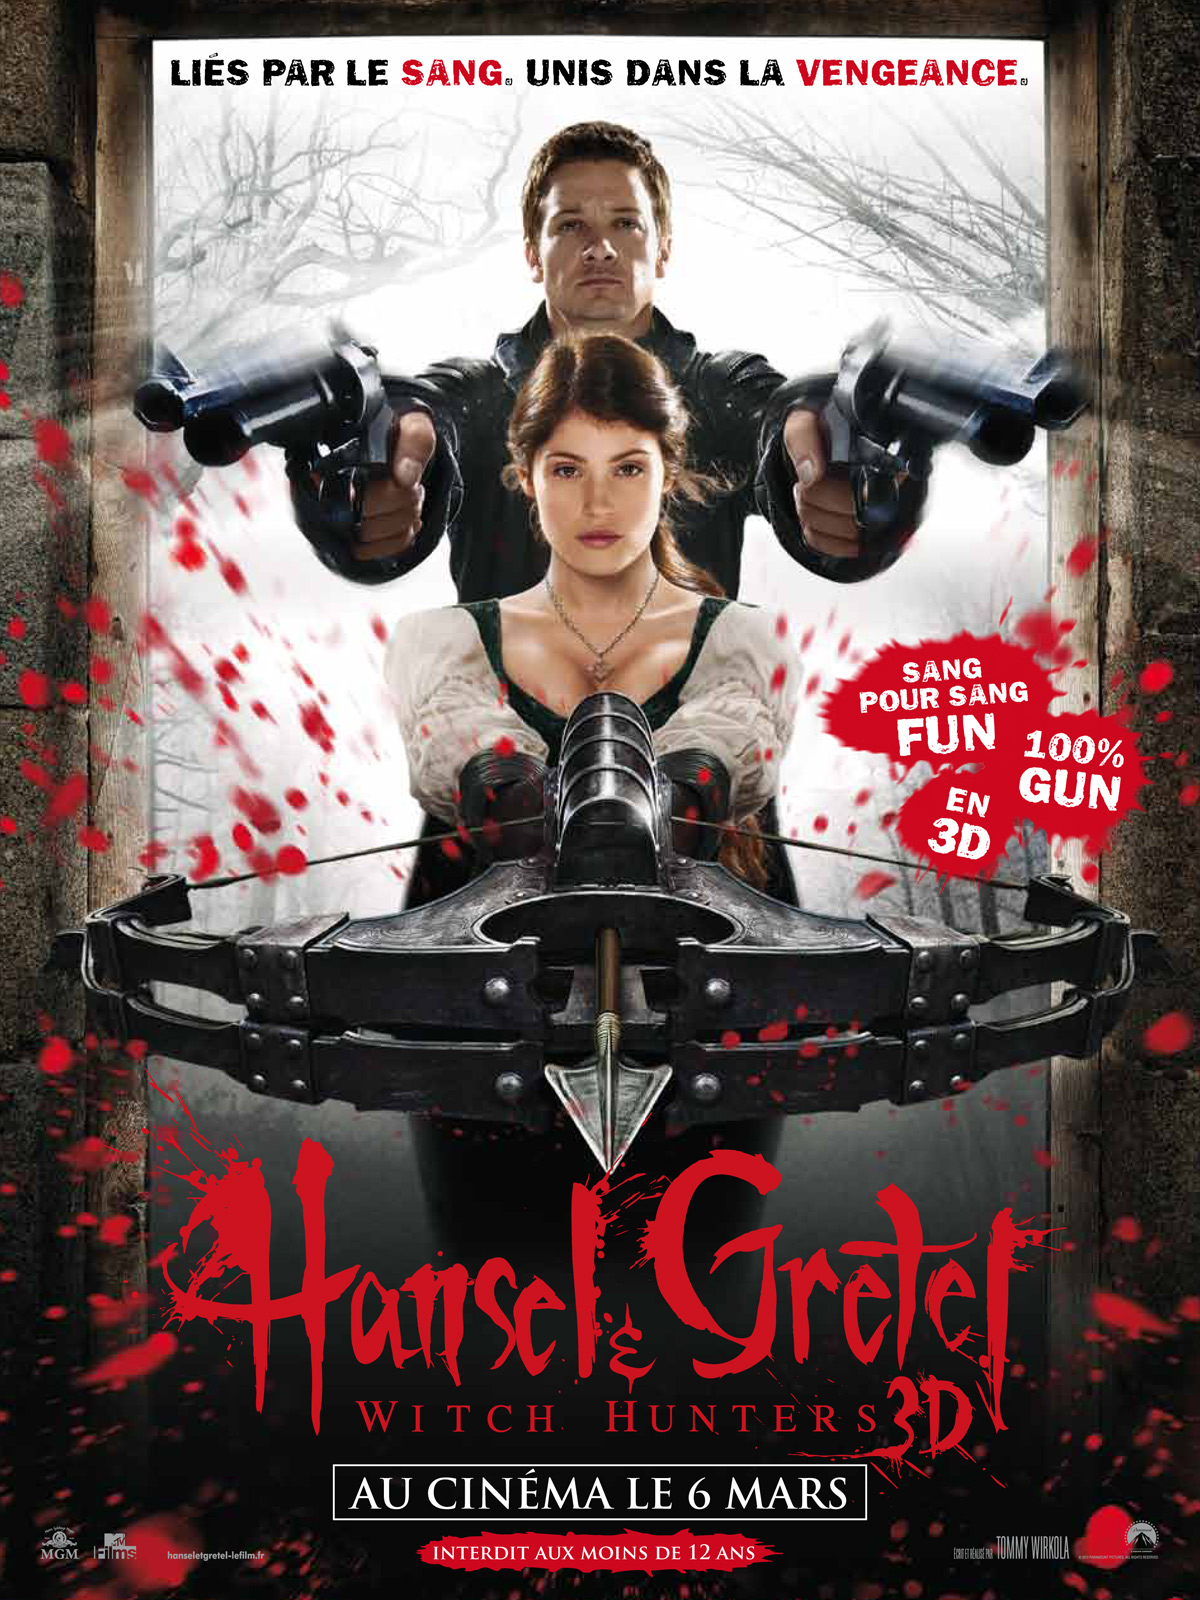 Hansel et Gretel: Witch Hunters